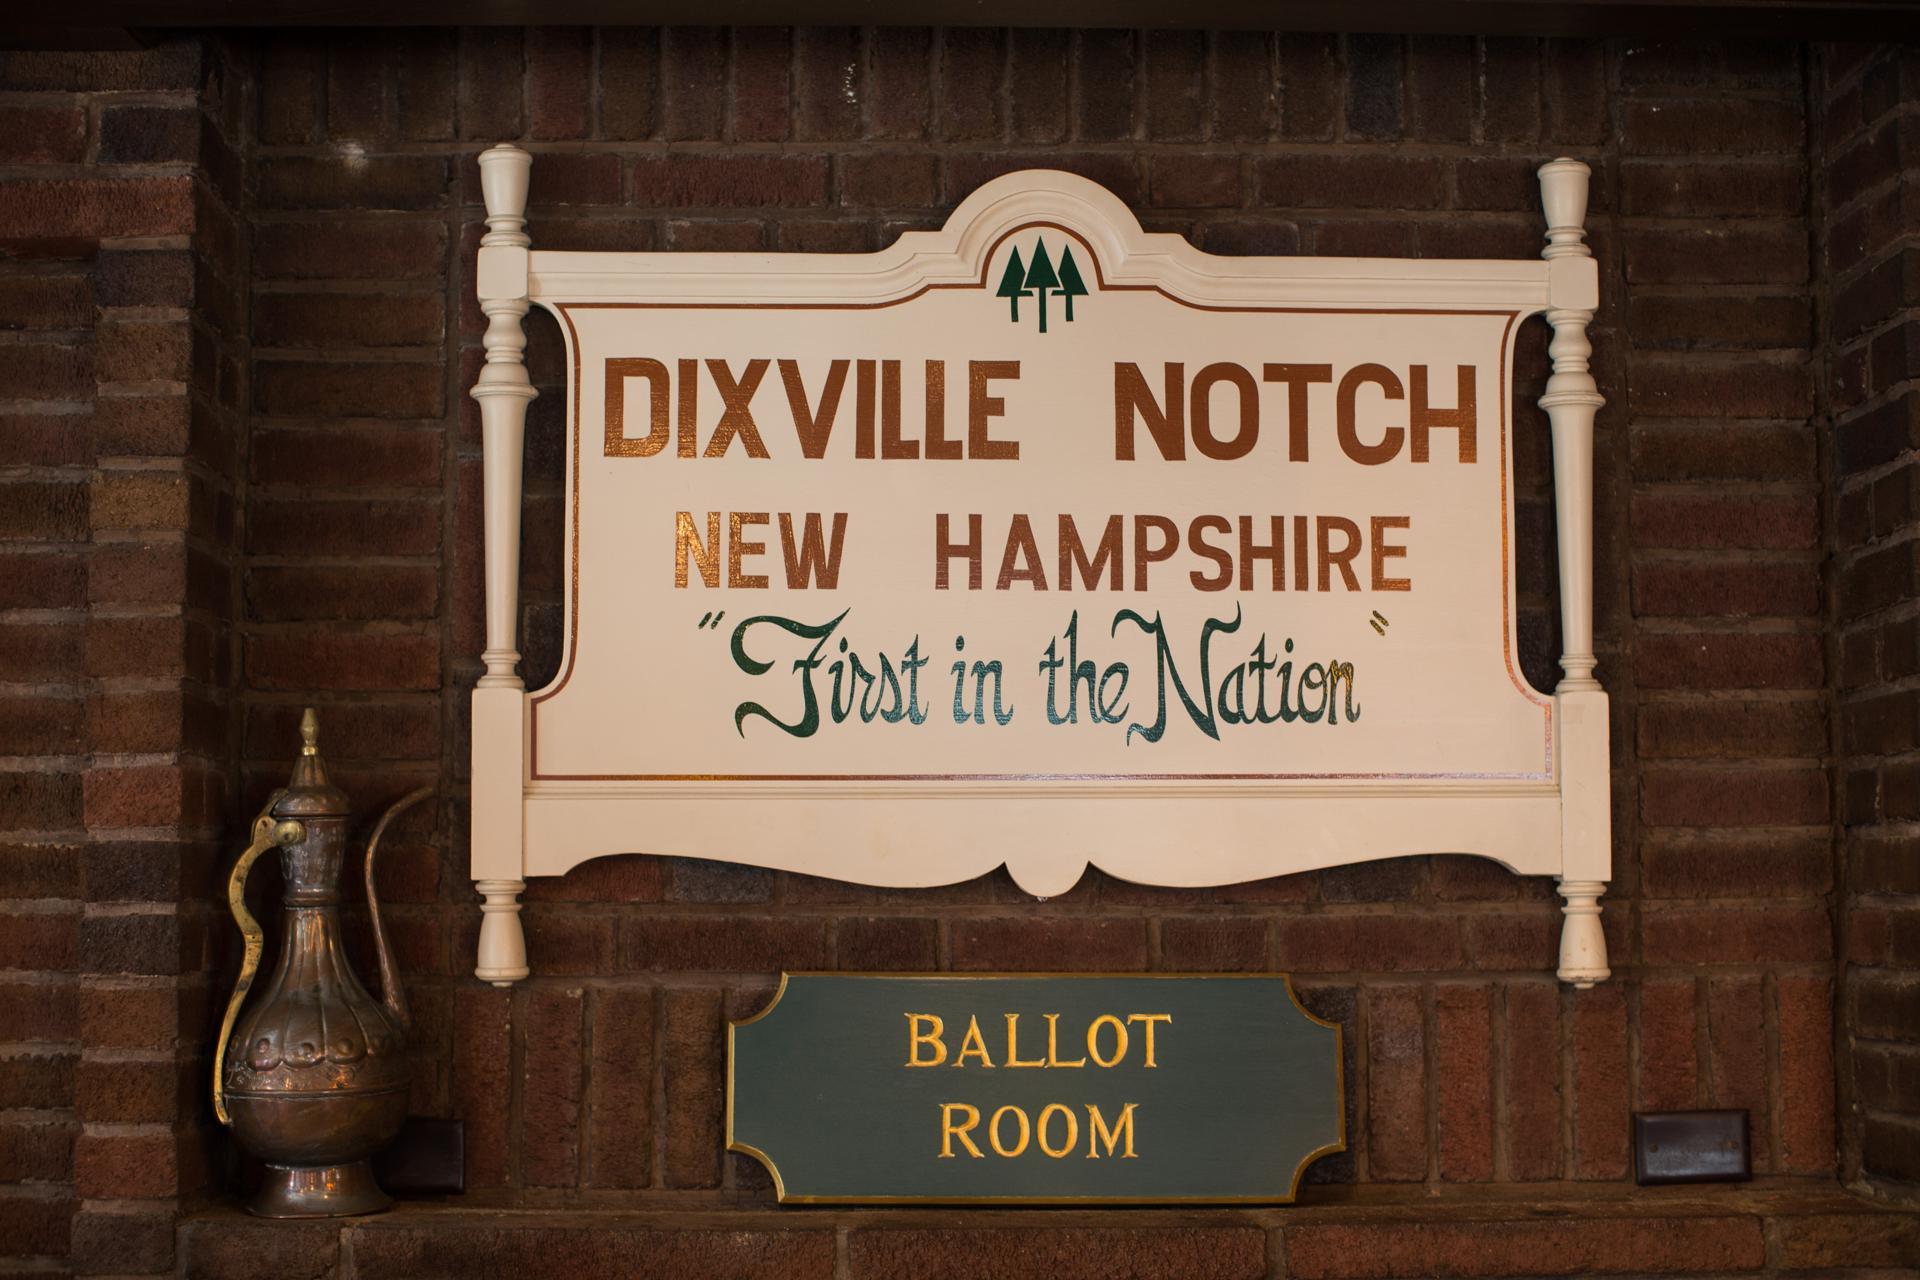 as population dwindles in dixville notch, so do the candidate